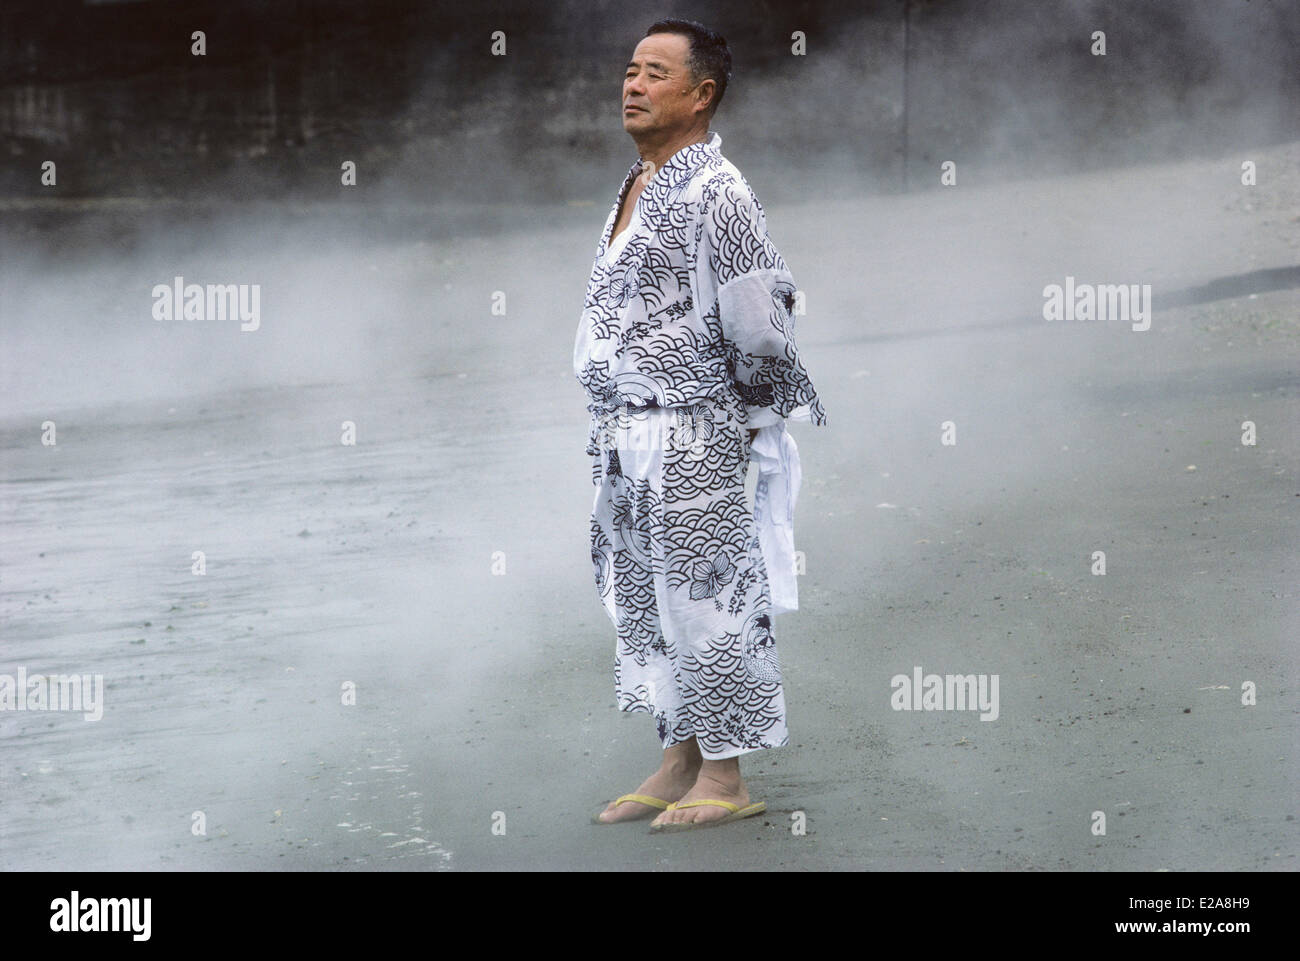 Japan, Kyushu Island, Ibusuki, Bather in yukata (light dress) - Stock Image